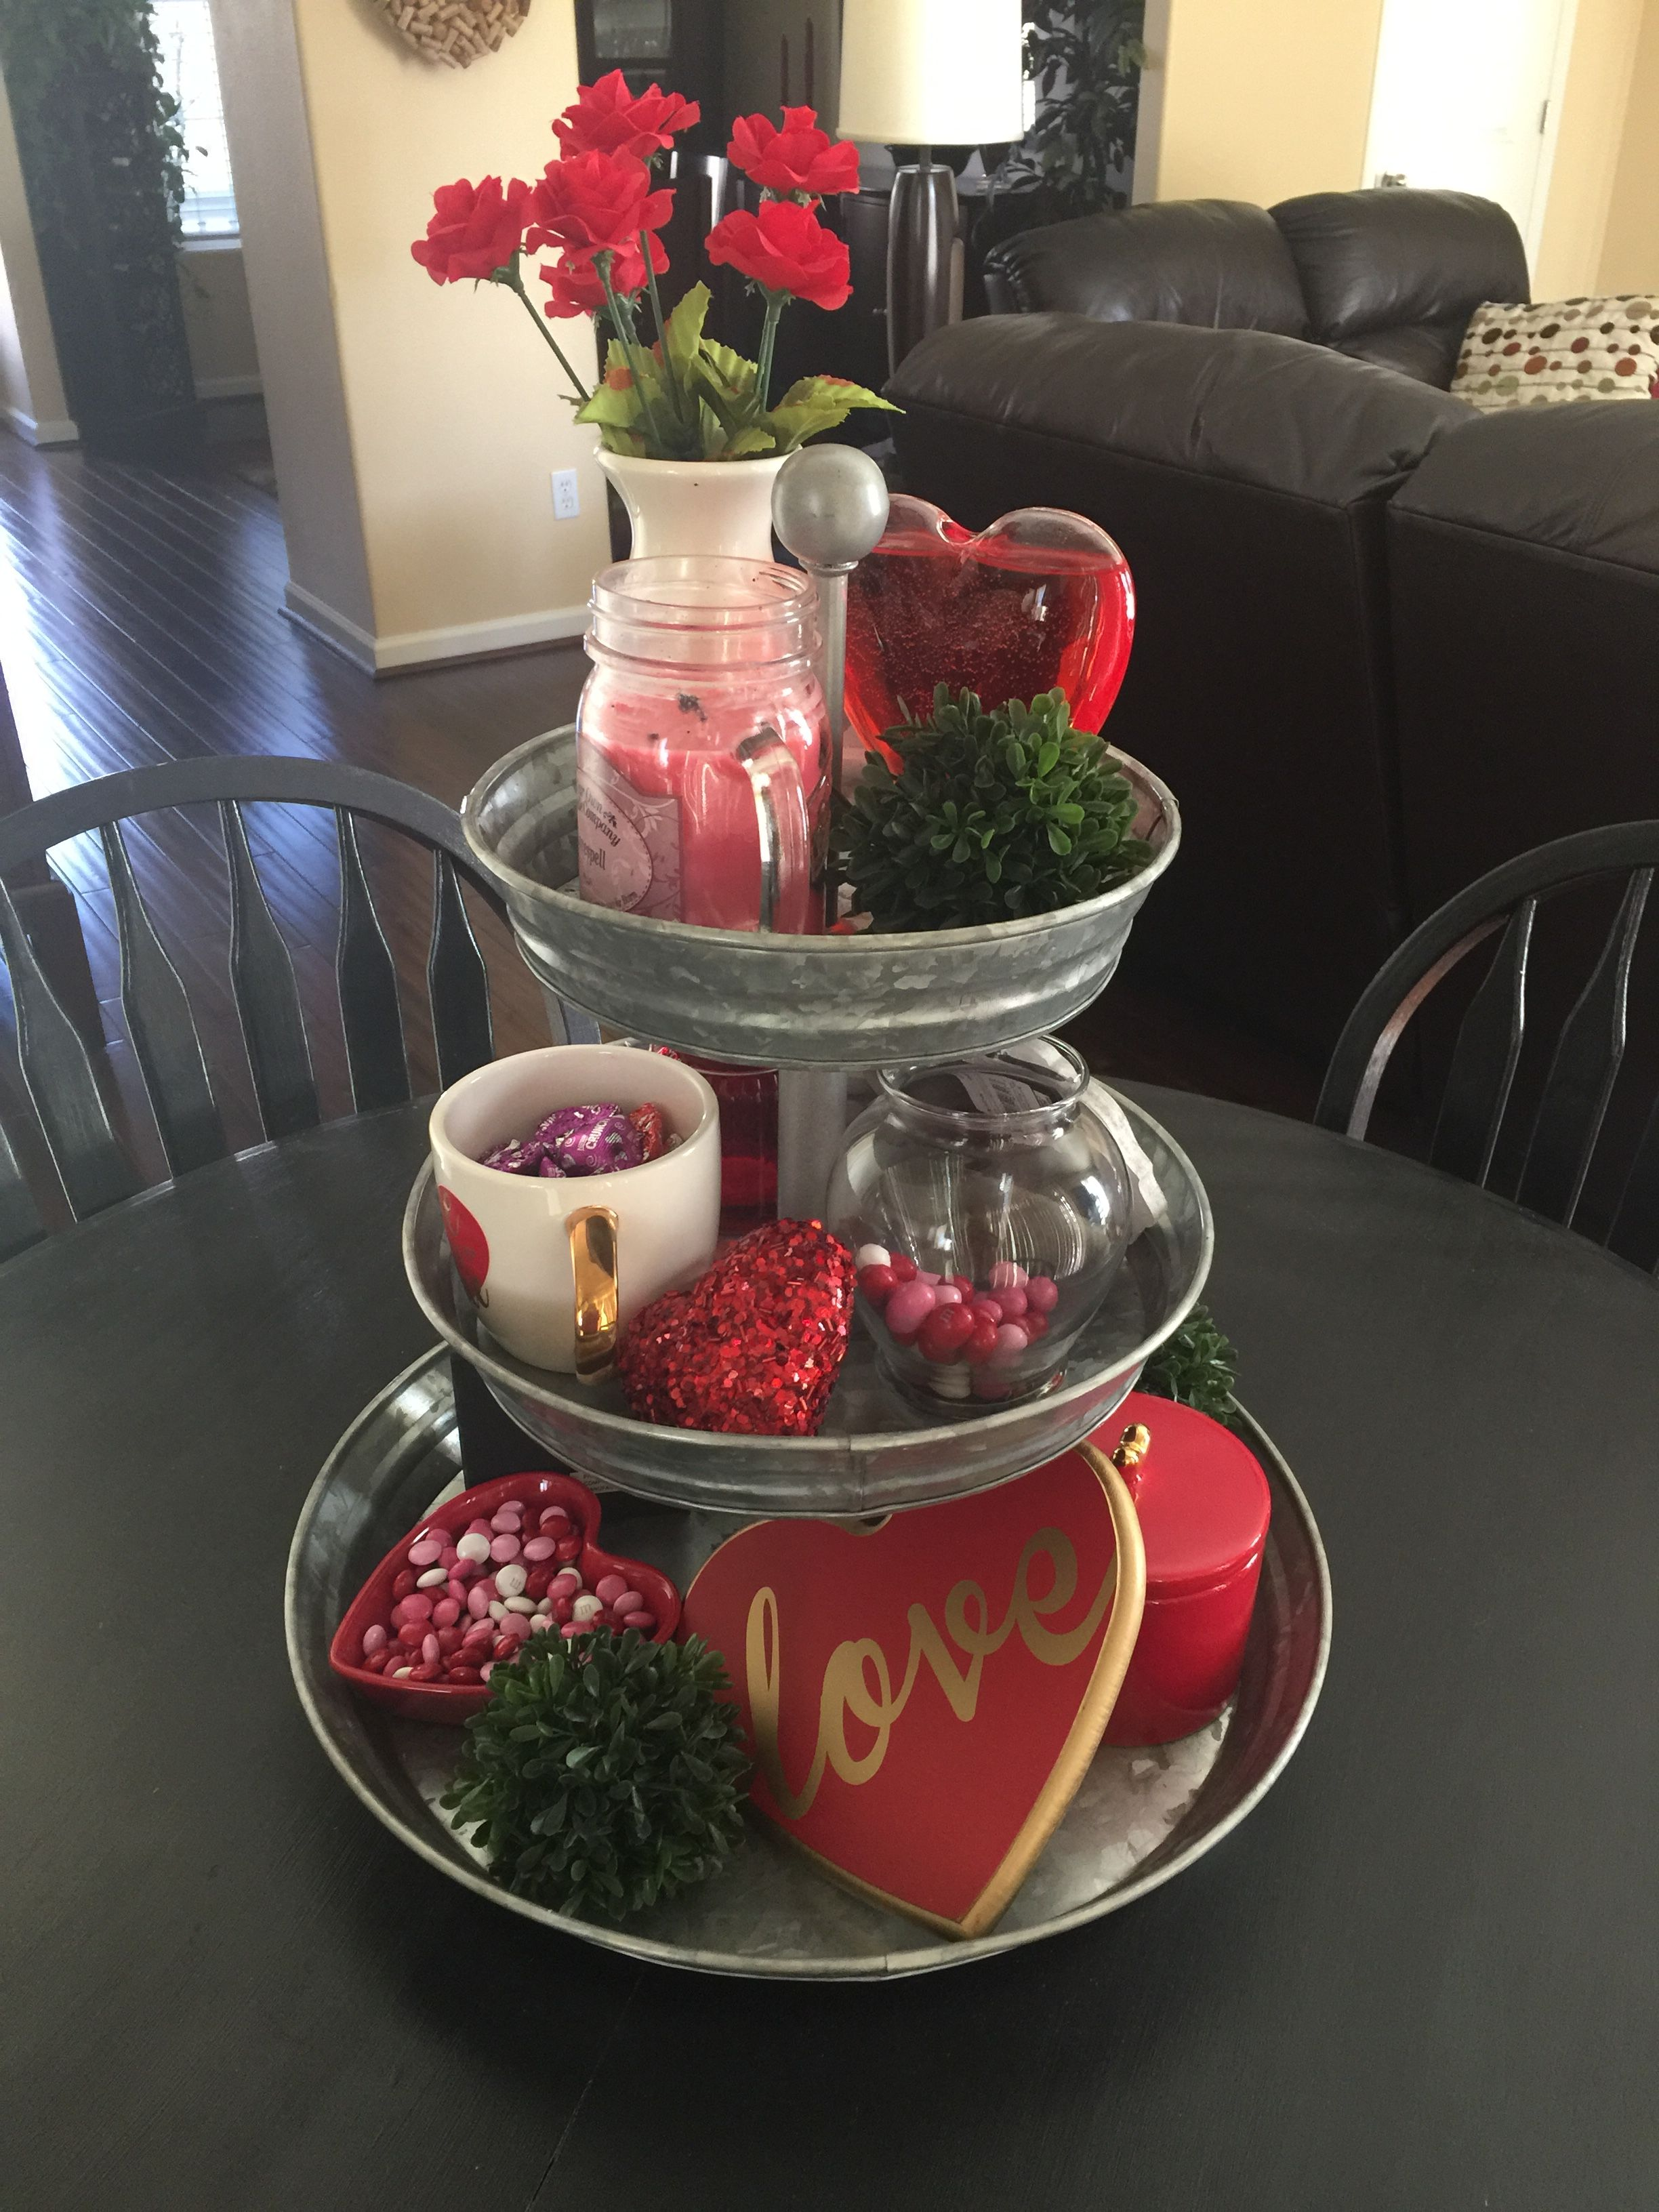 Obsessed With My 3 Tiered Tray First Holiday Valentinesday Potterybarn Diy Valentines Decorations Valentines Day Decorations Tiered Tray Decor